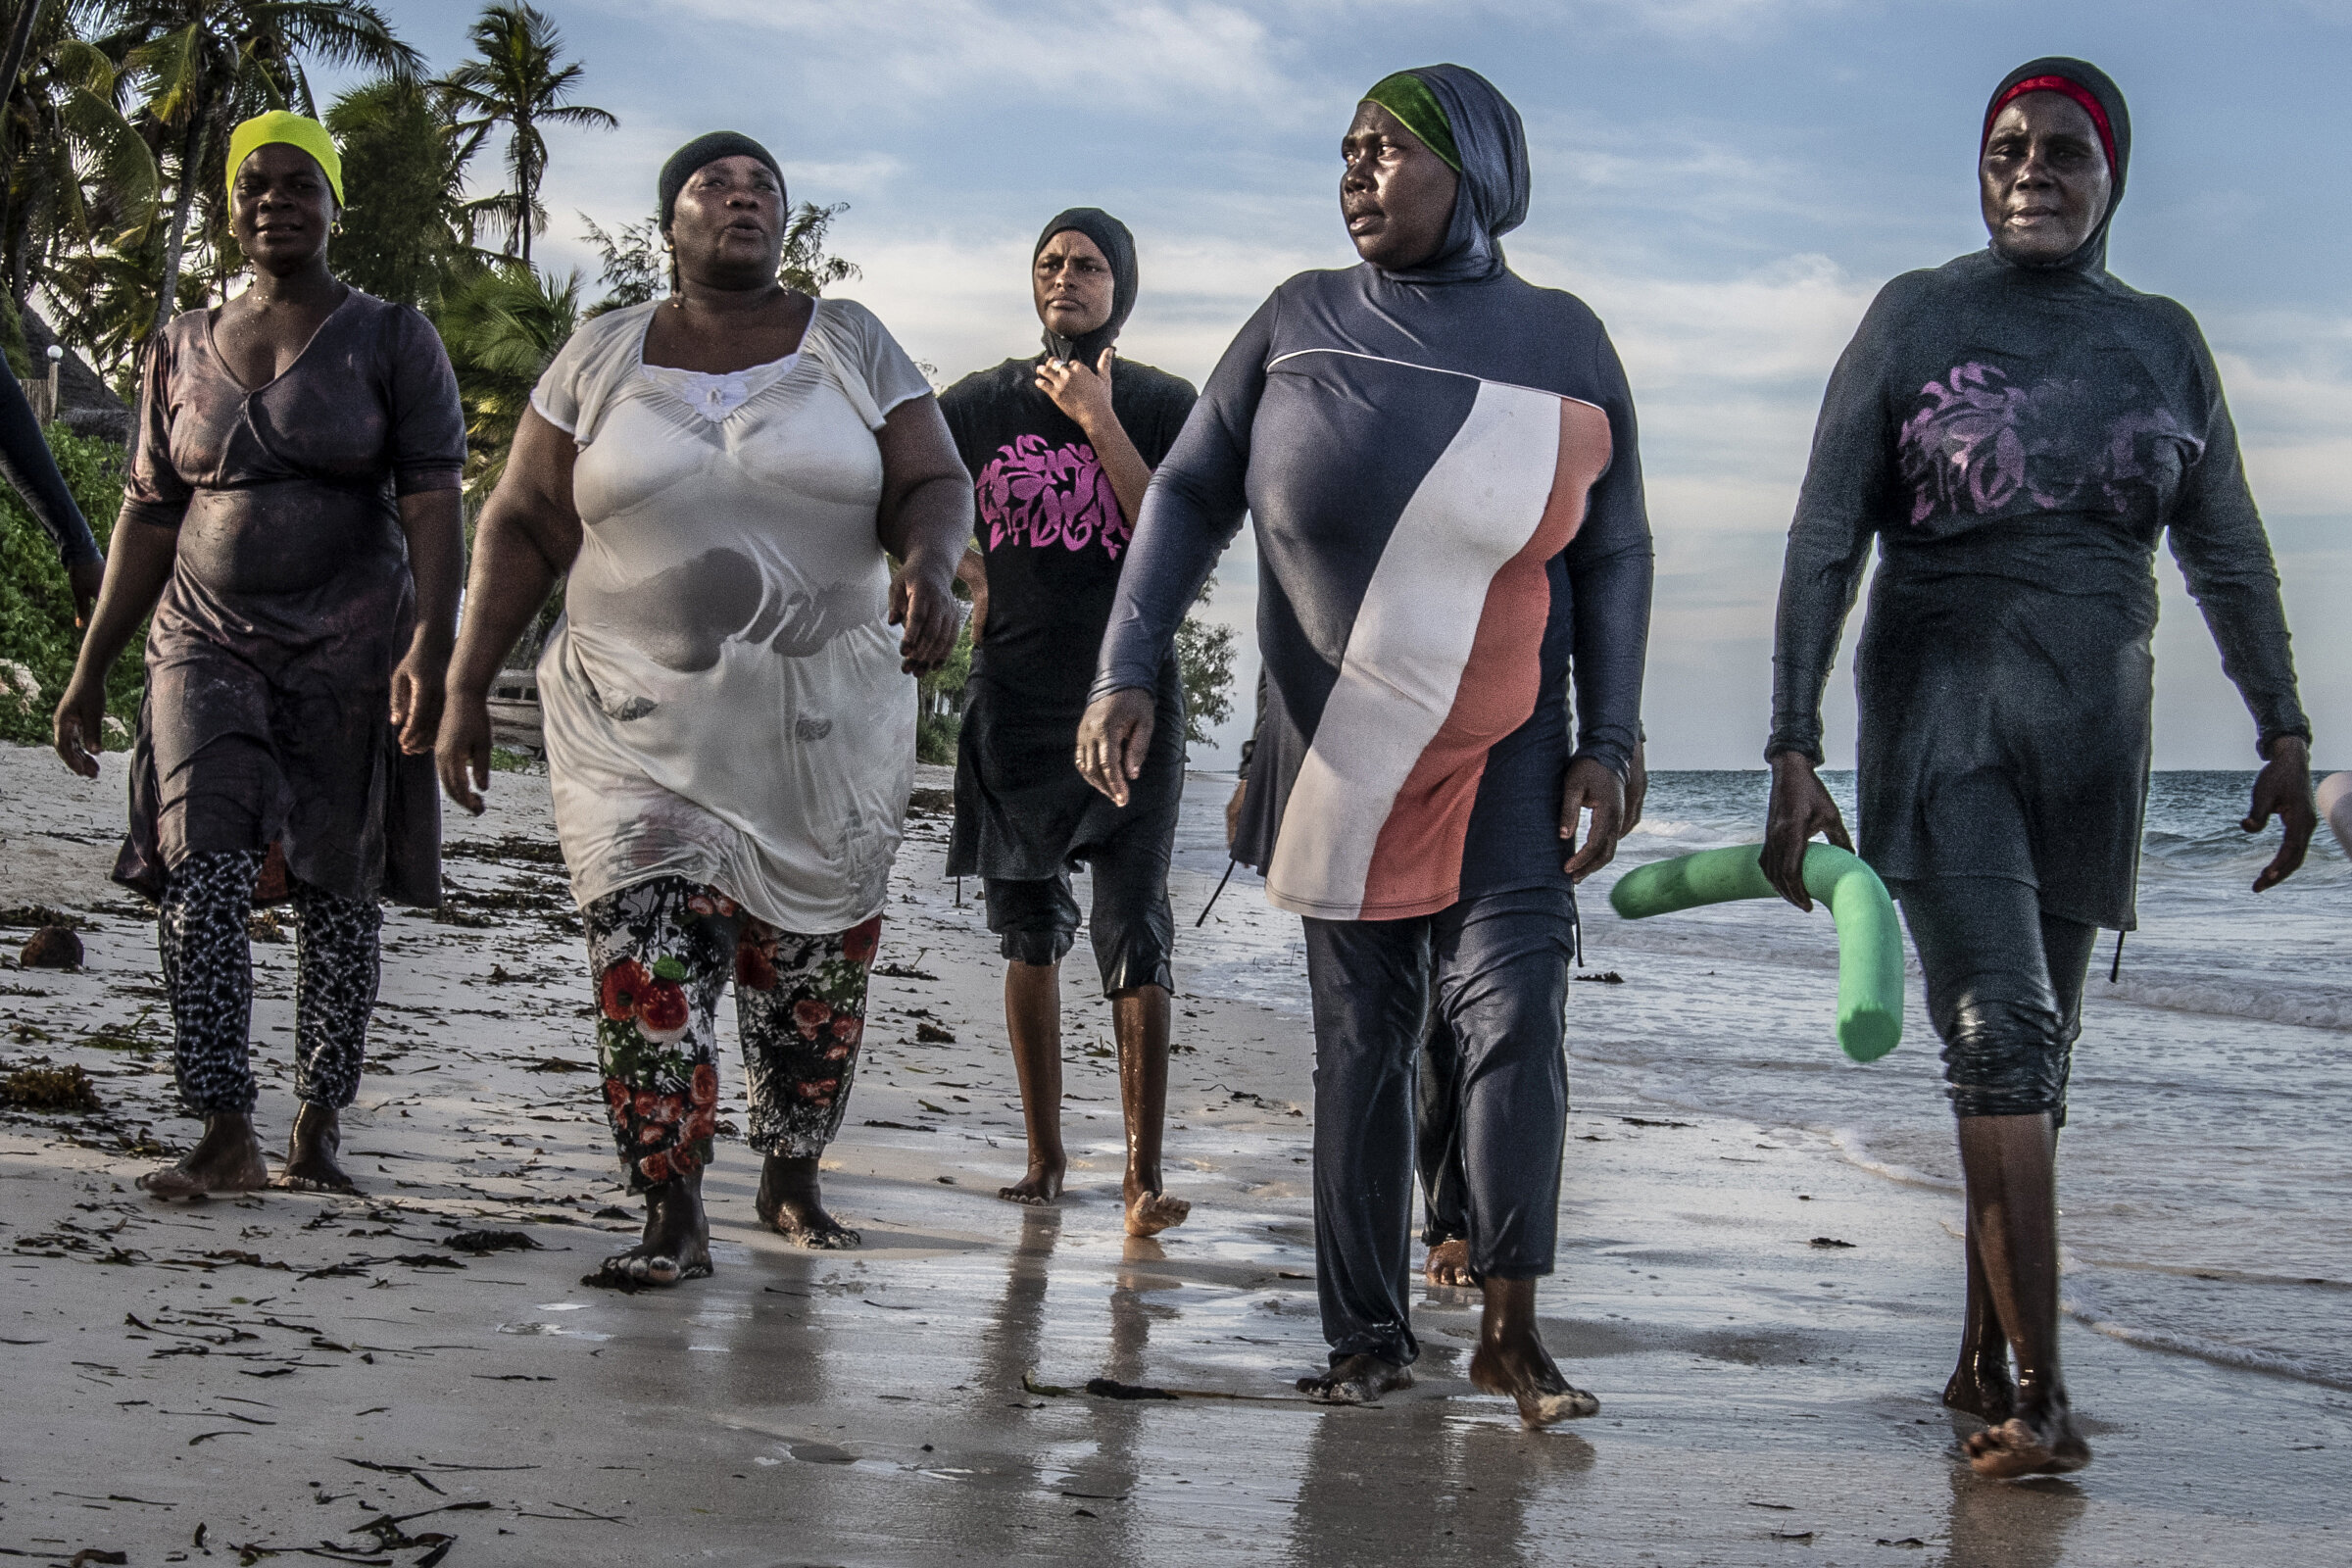 Swim instructor, octopus hunter, elder Bisichana (far right) walks on shore with her octopus hunter swim students after their lesson. Second from left is the wife of the village elder.